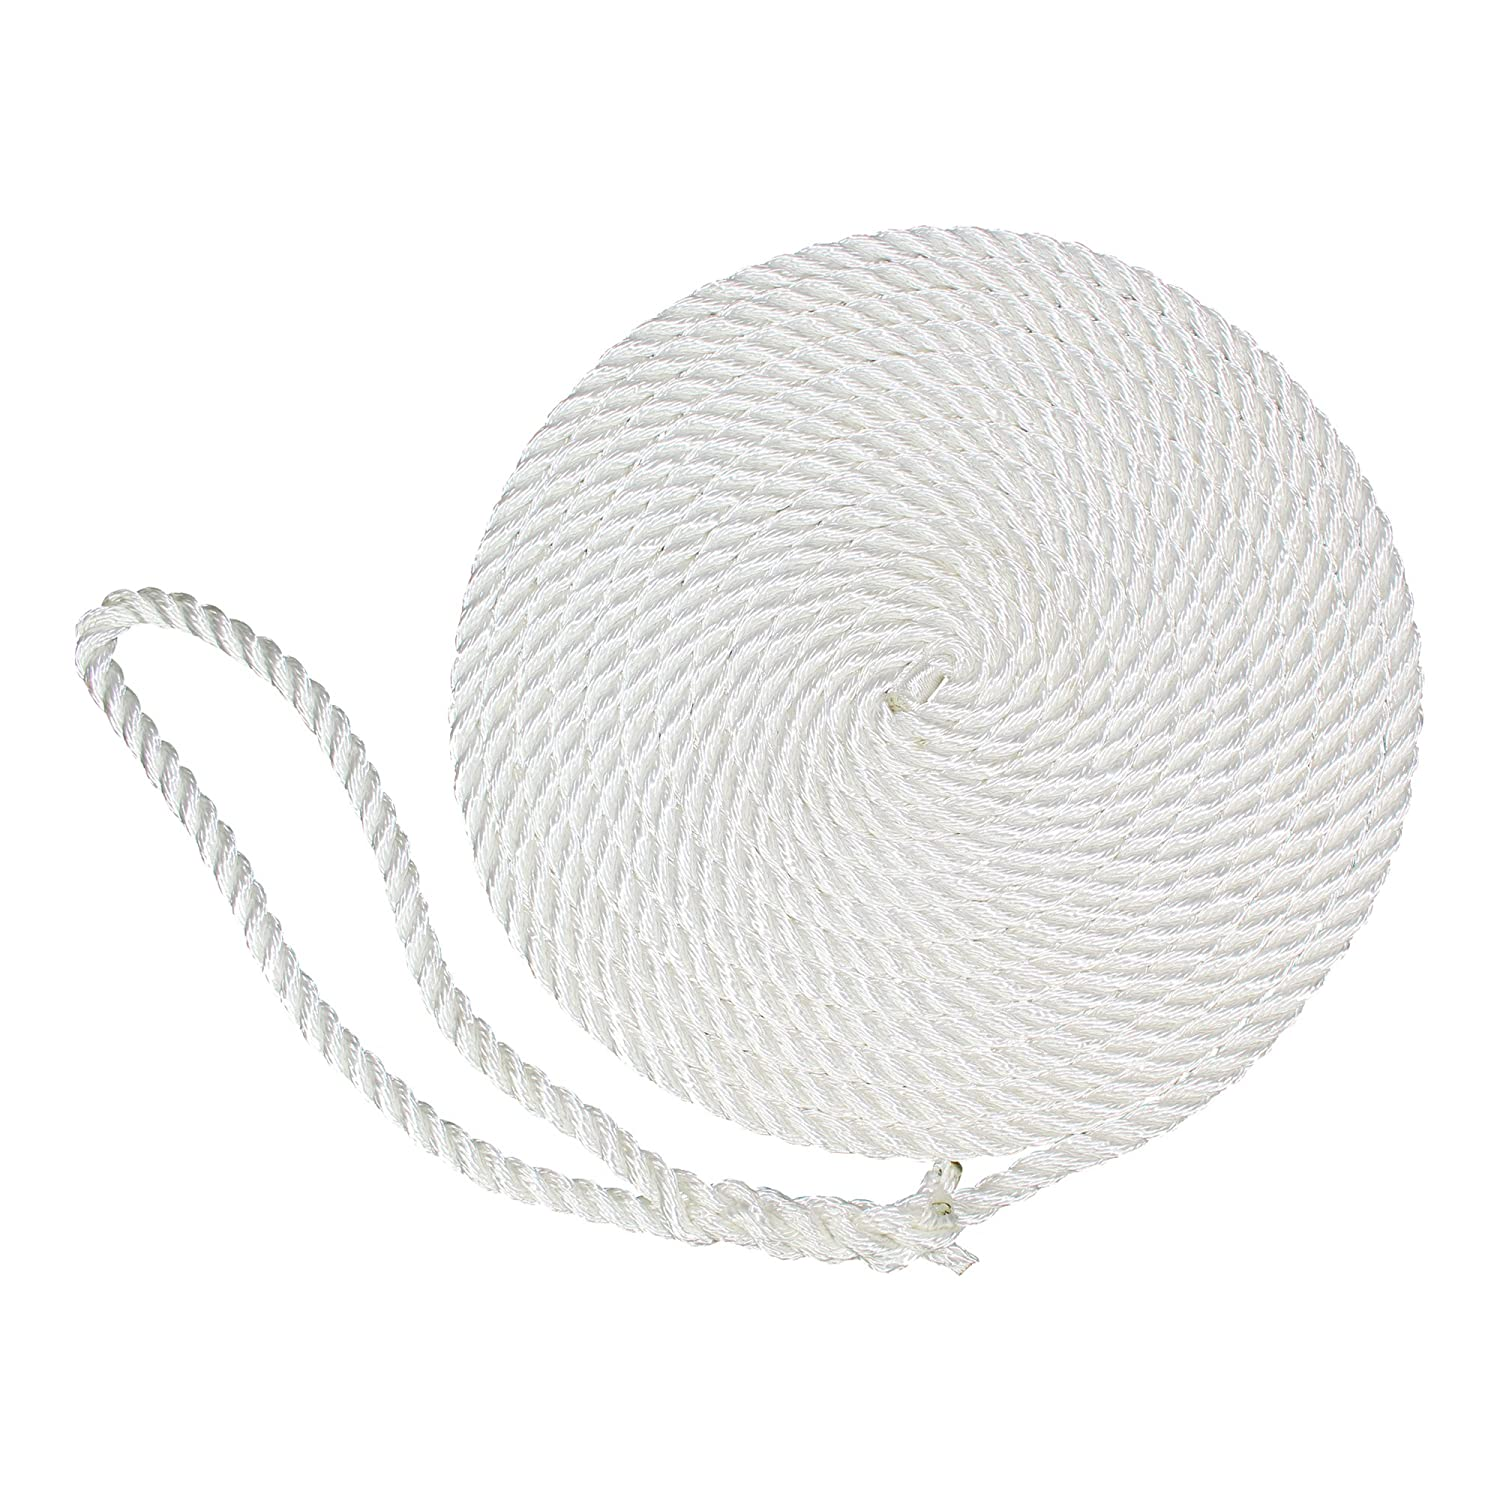 2-Pack, White - 3-Strand Twist Nylon Rope Docklines Marine Ropes for Boat//Boats SGT KNOTS Twisted Nylon Dockline Dock Lines